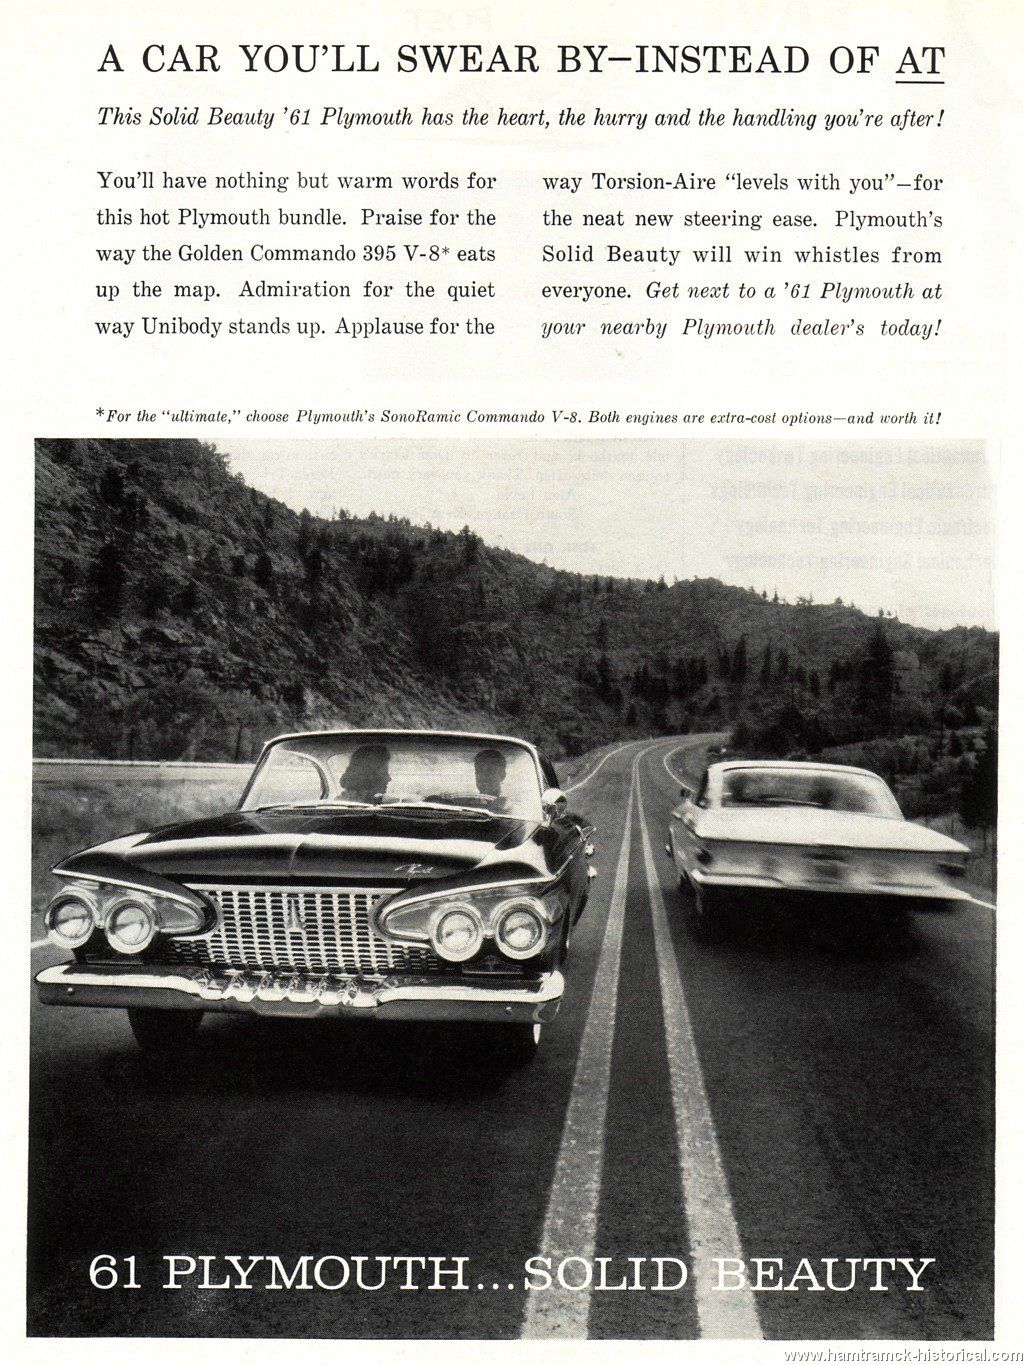 1960 Plymouth Ad | Old-Timer@II | Pinterest | Plymouth, Ads and Mopar